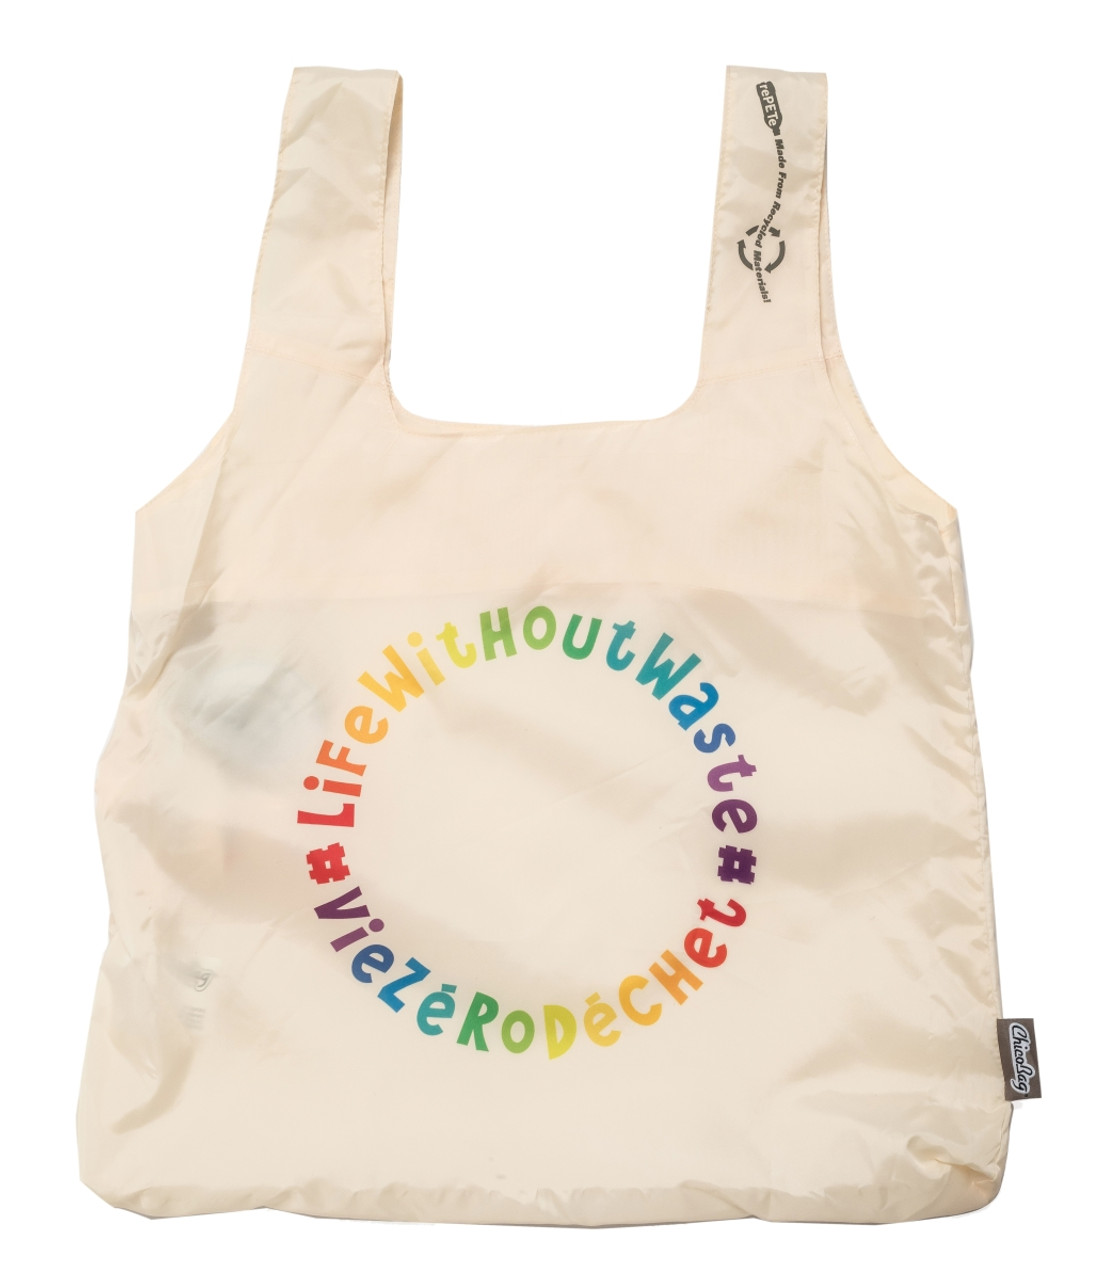 Life Without Waste ChicoBag Original Repete